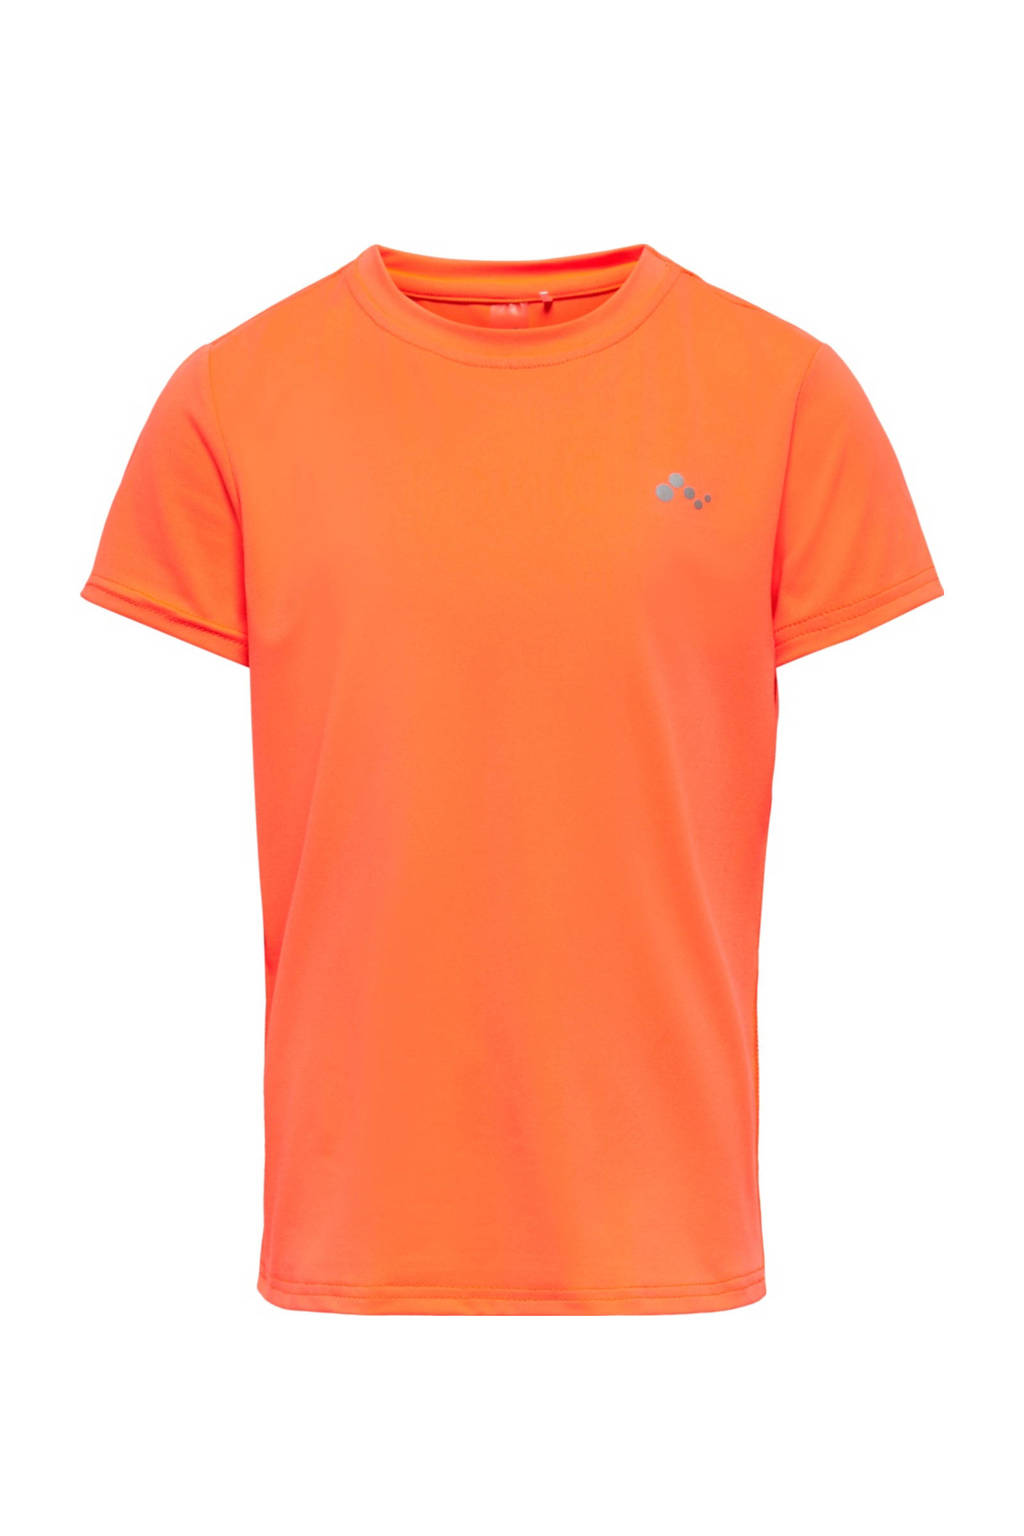 ONLY PLAY Girls sport T-shirt Clarisa oranje, Oranje